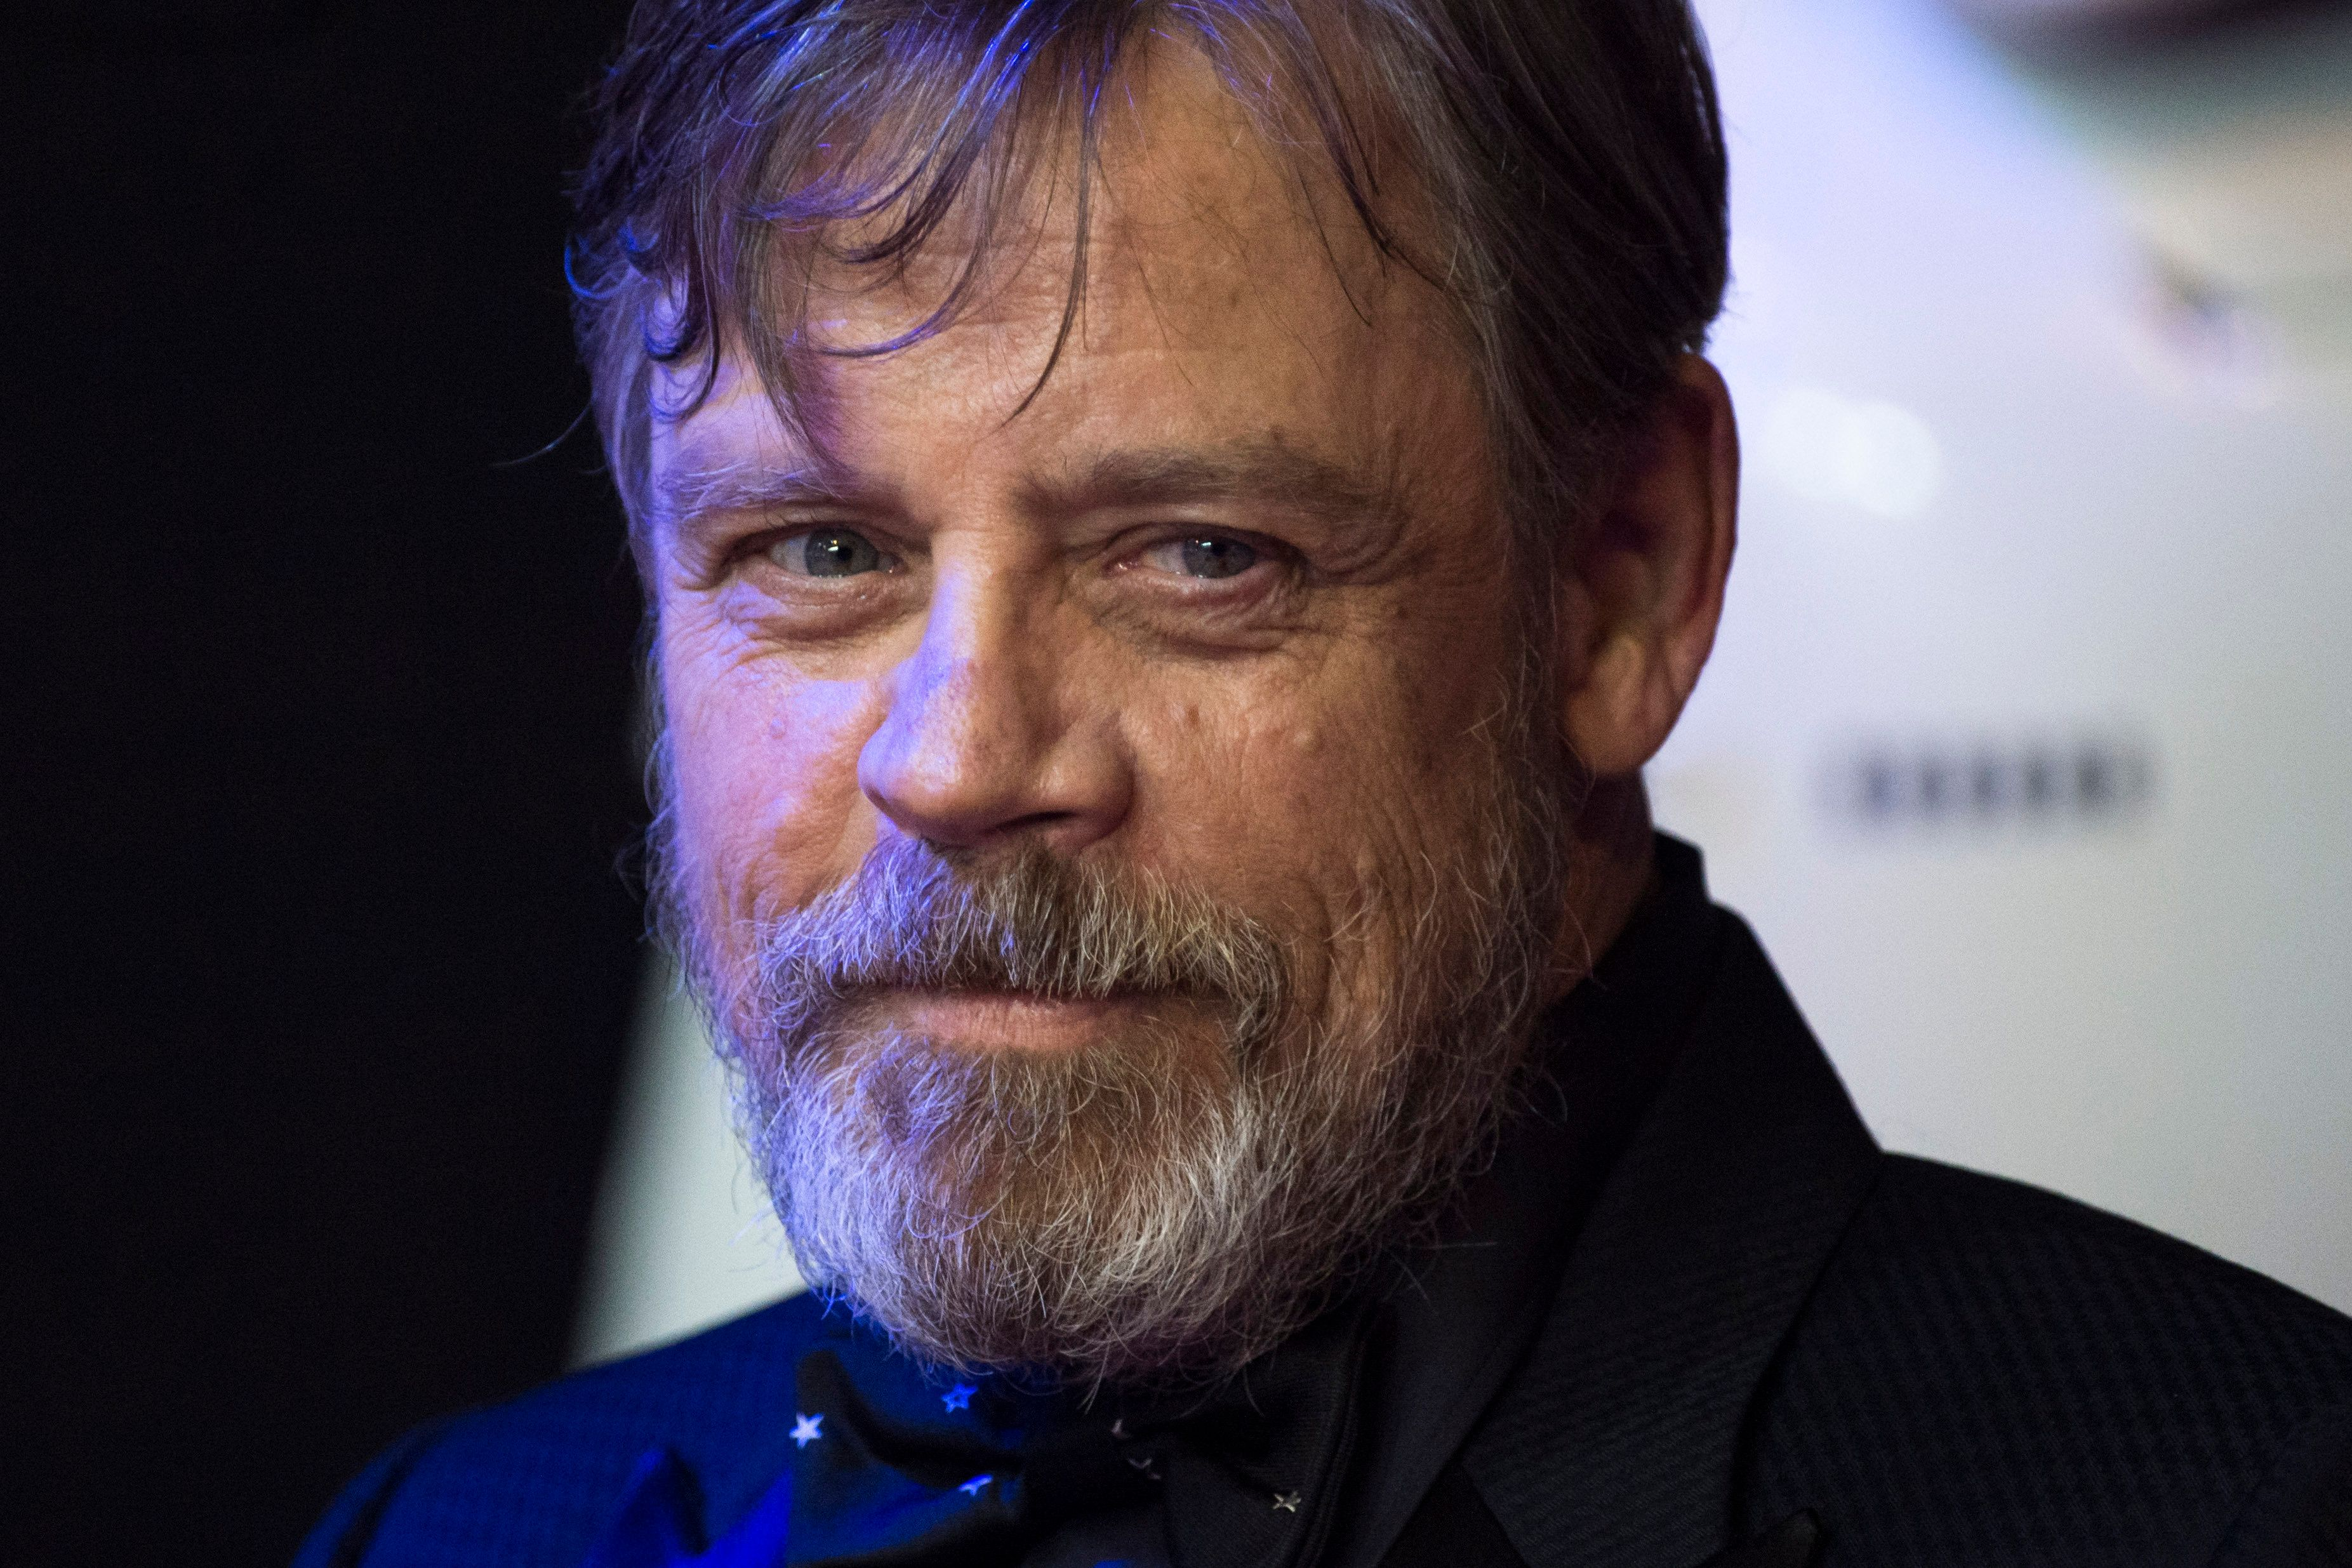 Mark Hamill attending the premiere of 'Star Wars: The Force Awakens' in Leicester Square, London